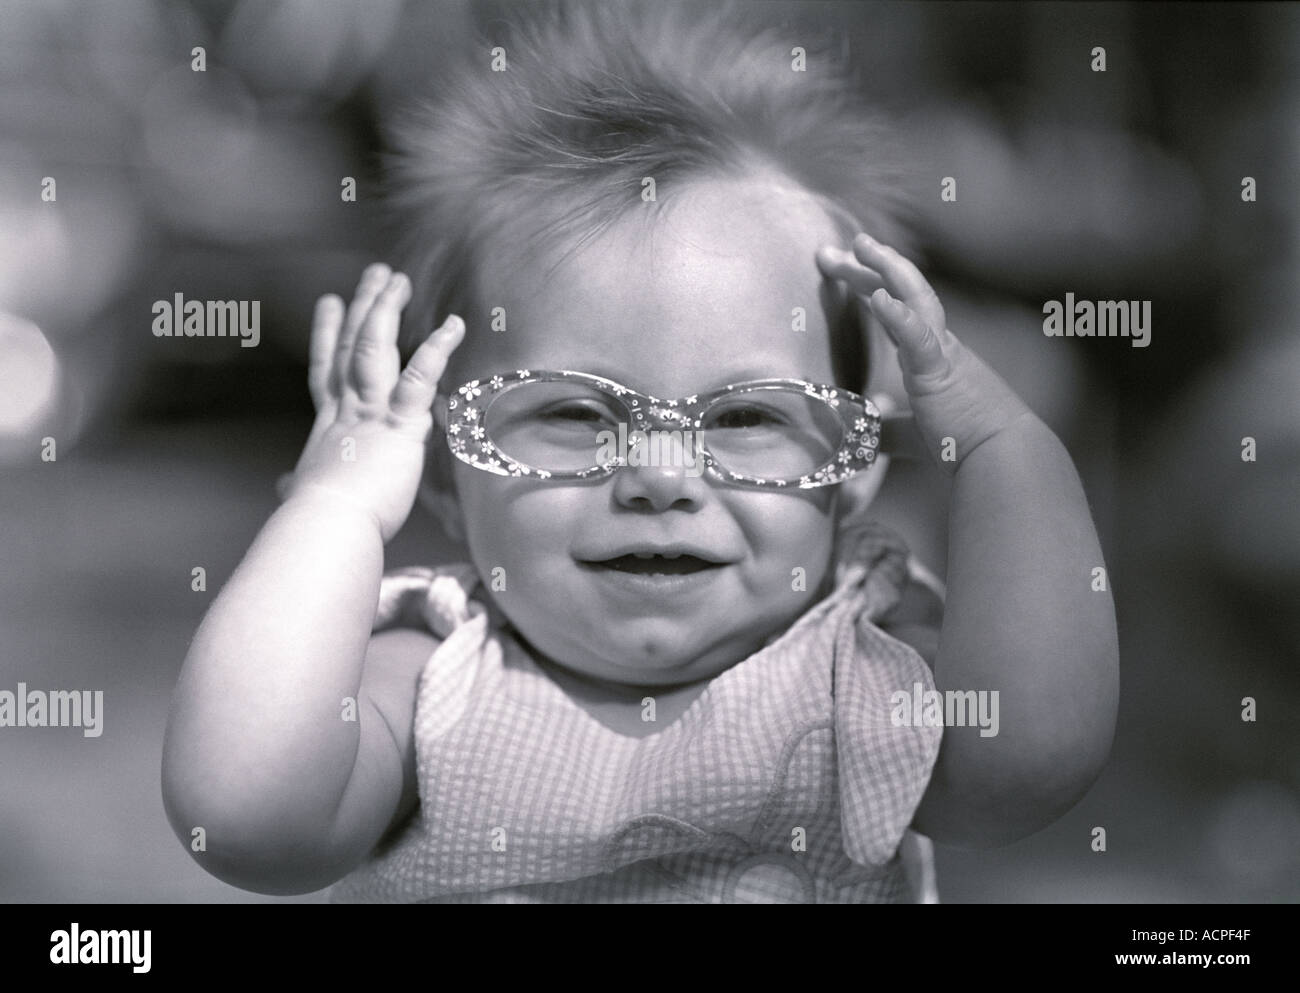 cute baby girl wearing funny glasses smiling stock photo: 2453326